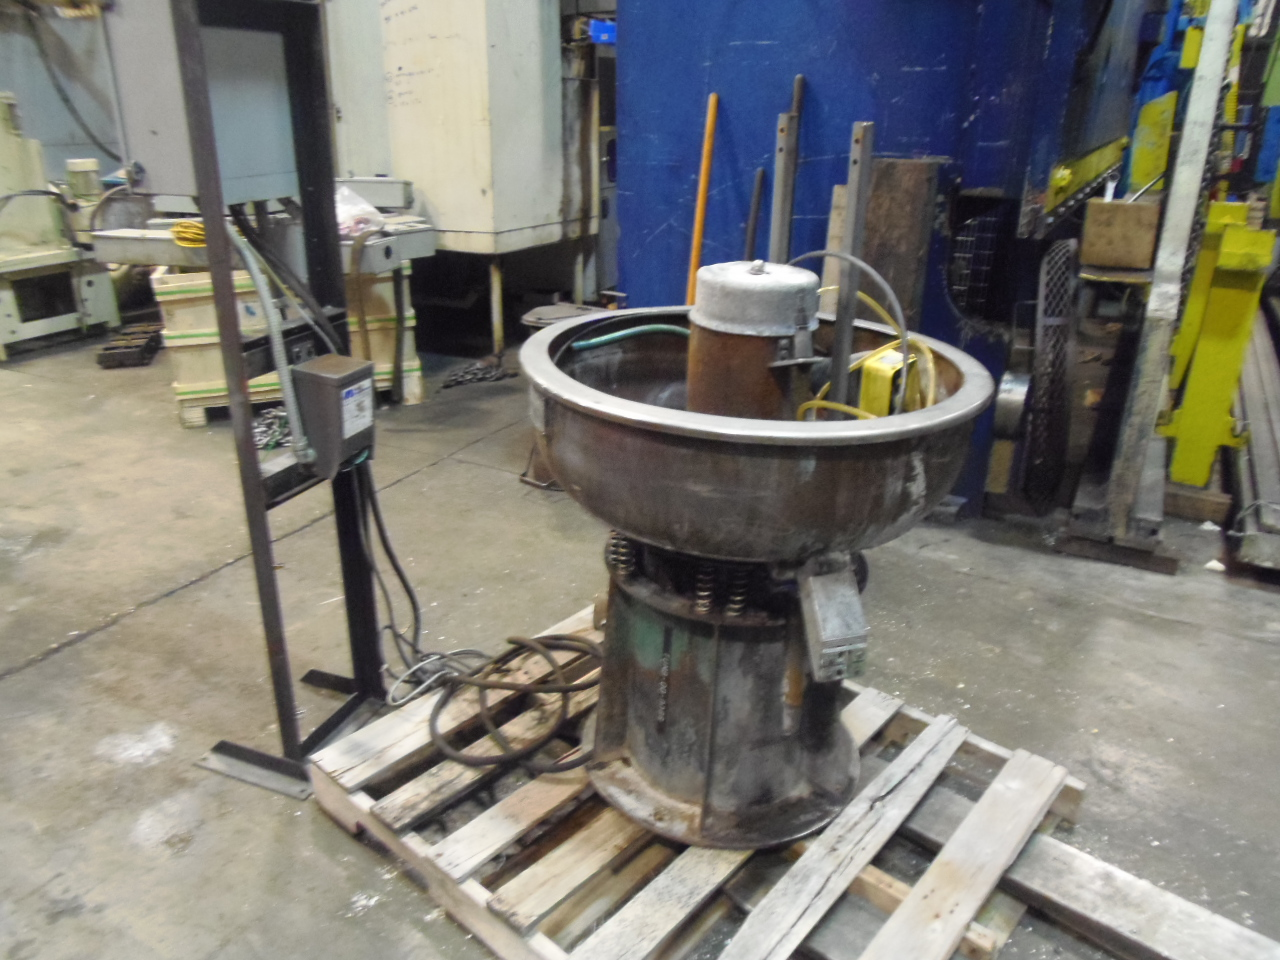 "3 CU FT. SWECO VIBRO ENERGY FINISHING MILL, VIBRATORY DEBURRING BOWL, APPROX 30"" DIAMETER x 10"" DEEP"